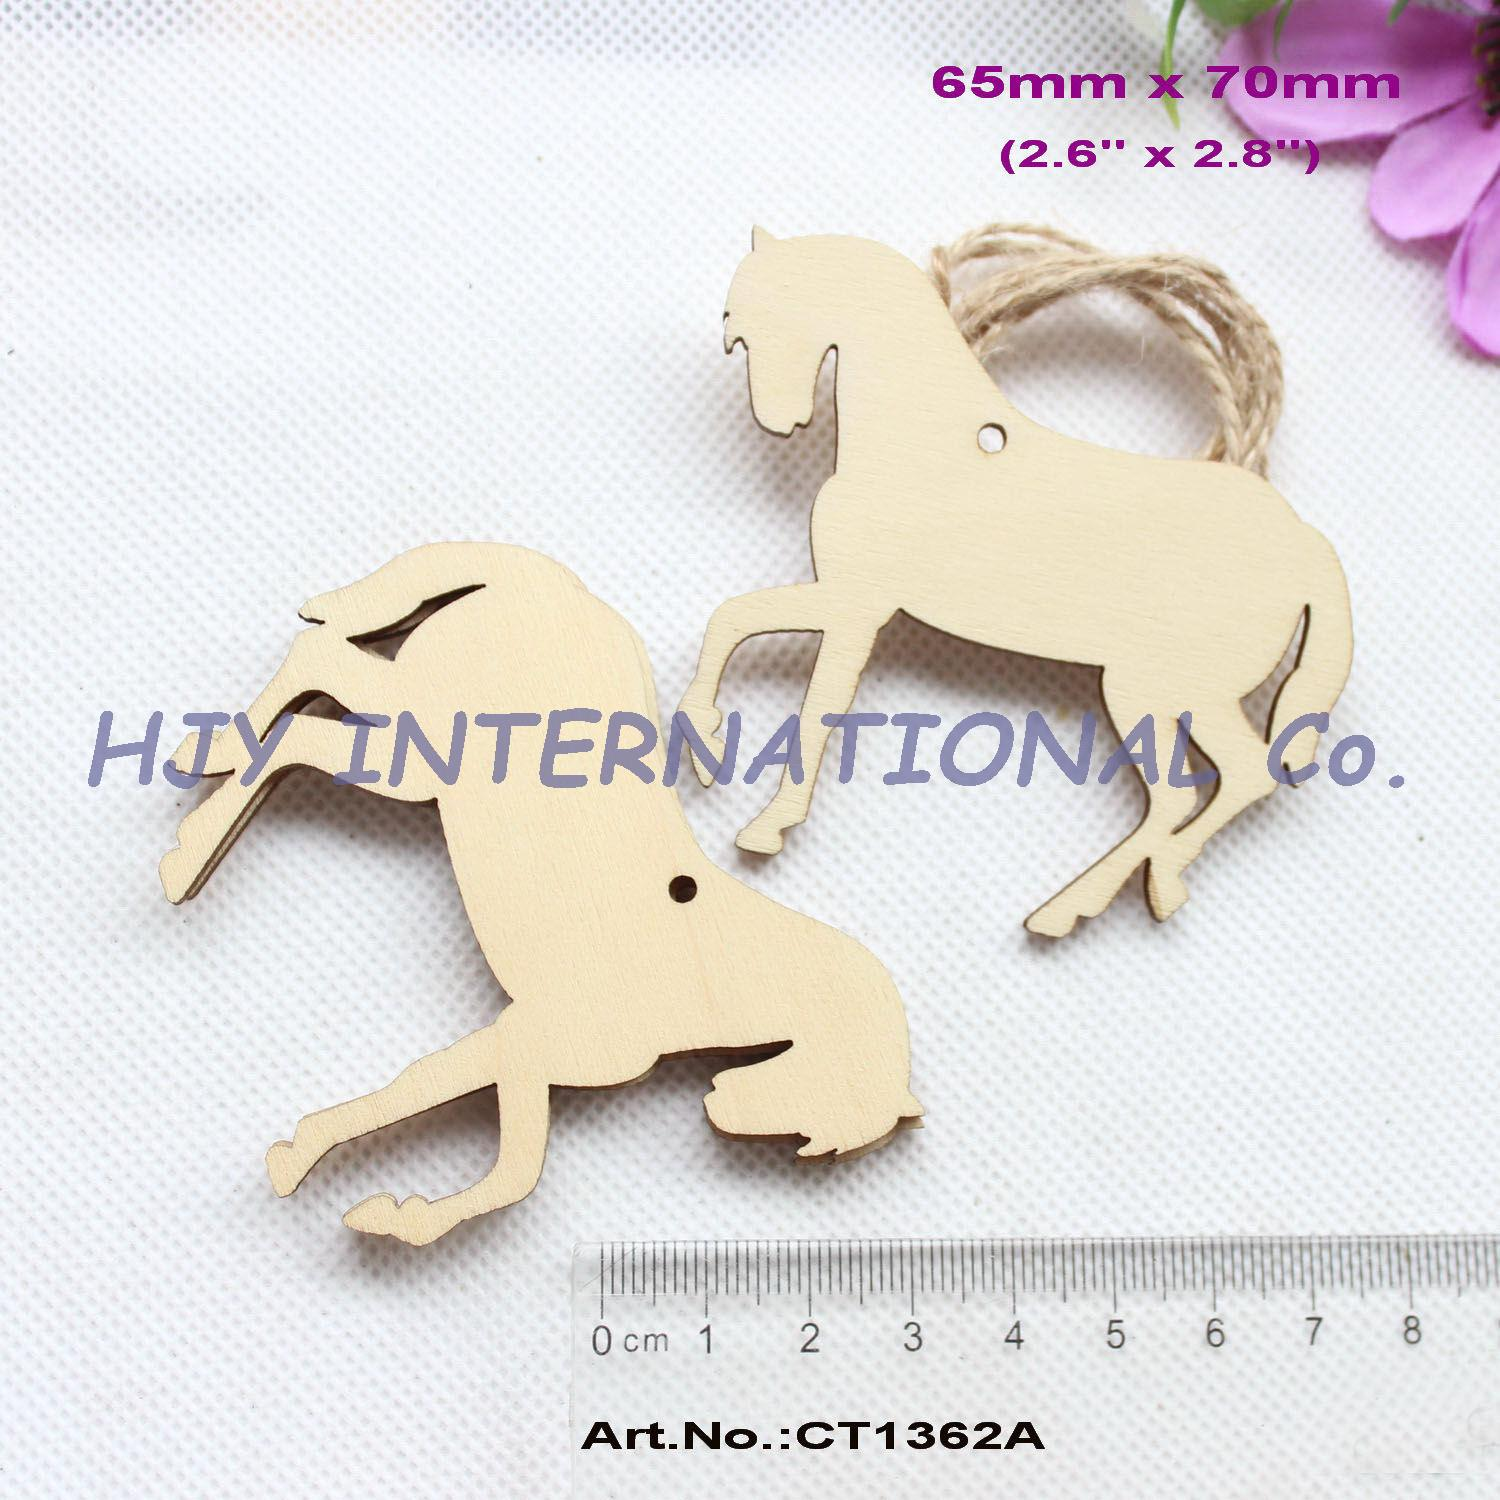 (14pcs/lot) 70mm Blank Wooden Horse Oraments Rustic Natural Wood Tags Craft In Bulk 2.8